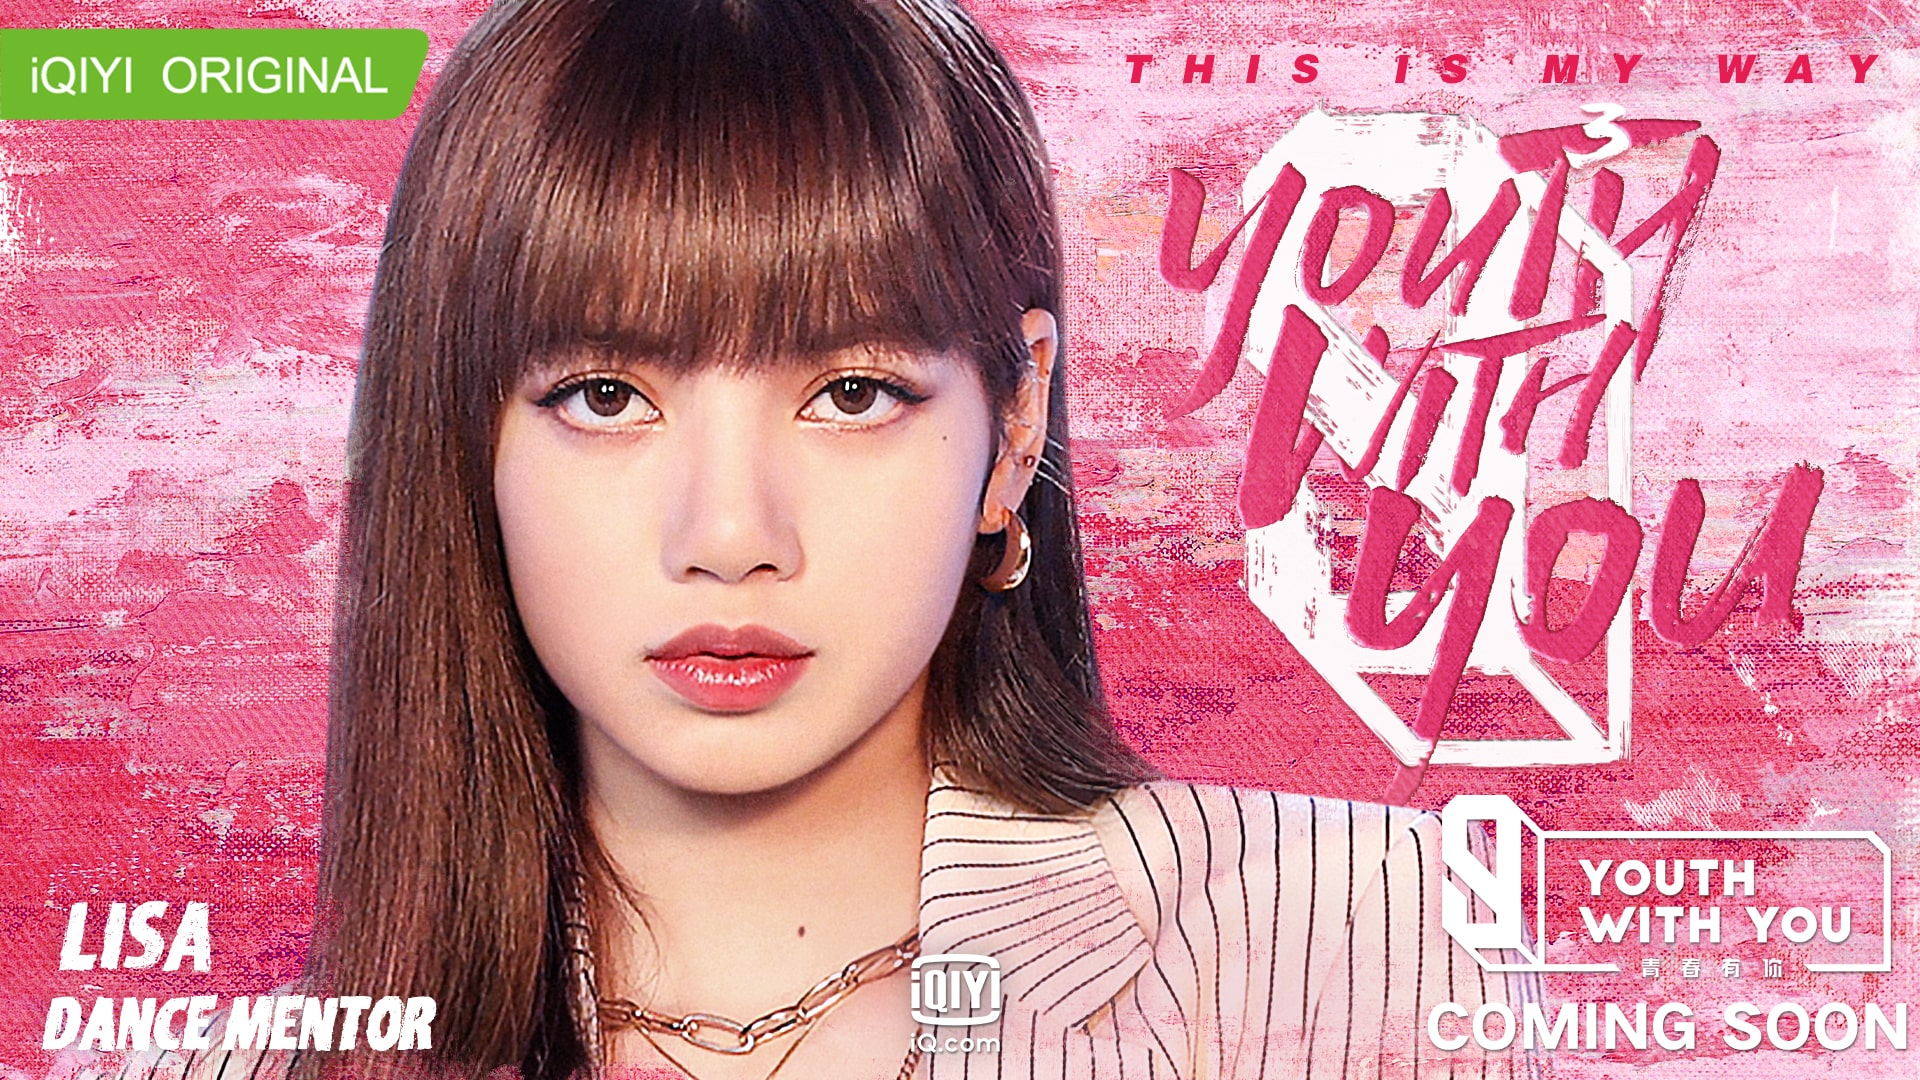 iQIYI announces star-studded lineup for 'Youth With You' Season 3; BLACKPINK's Lisa returns as Dance Mentor